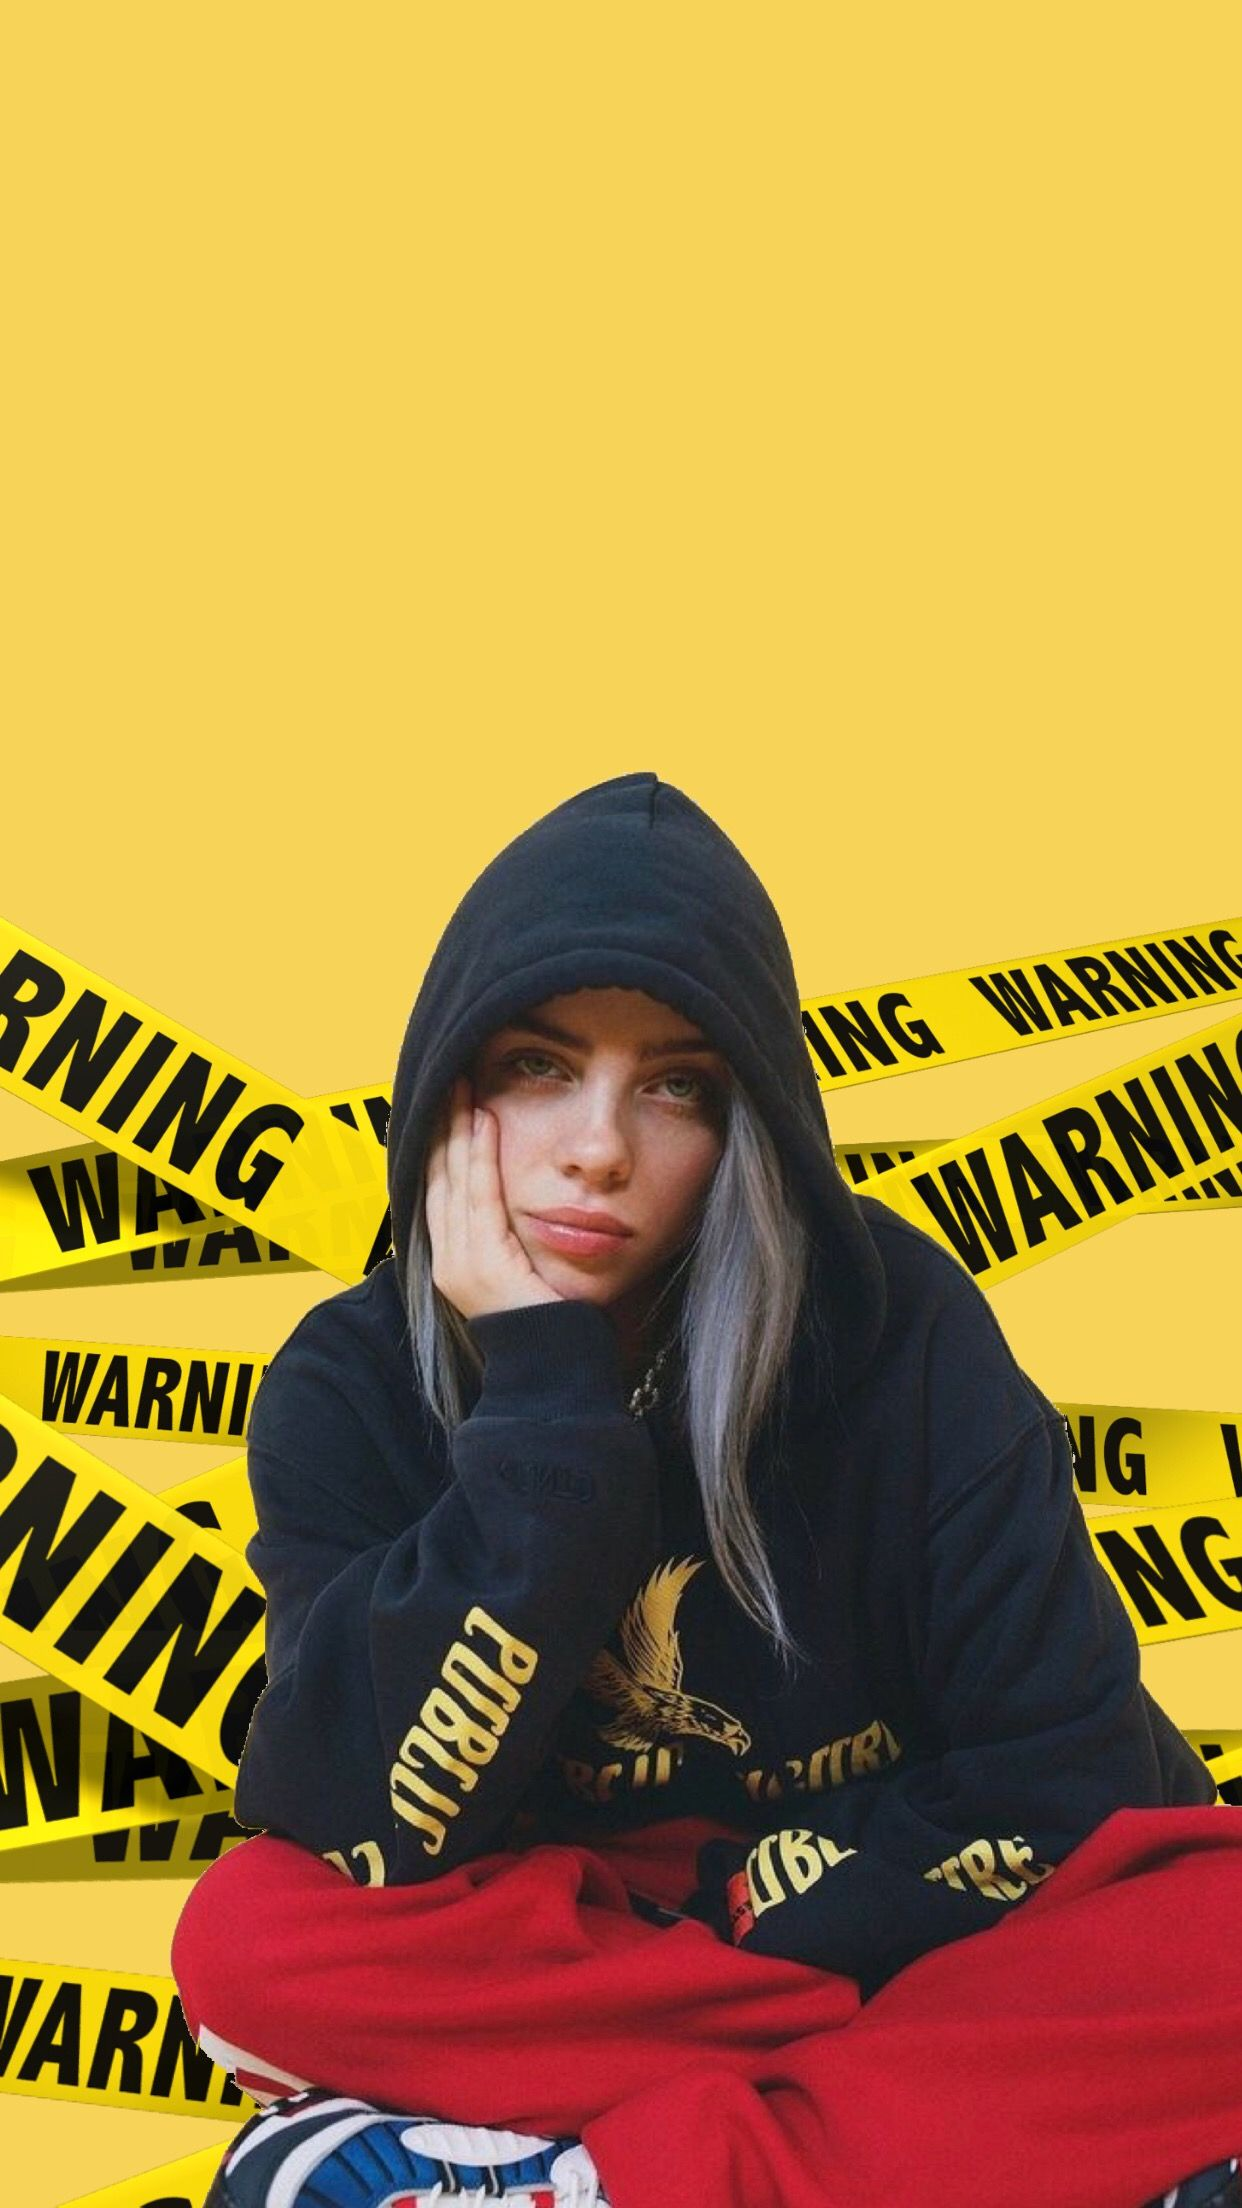 Billie Eilish Wallpapers Top Free Billie Eilish Backgrounds Wallpaperaccess